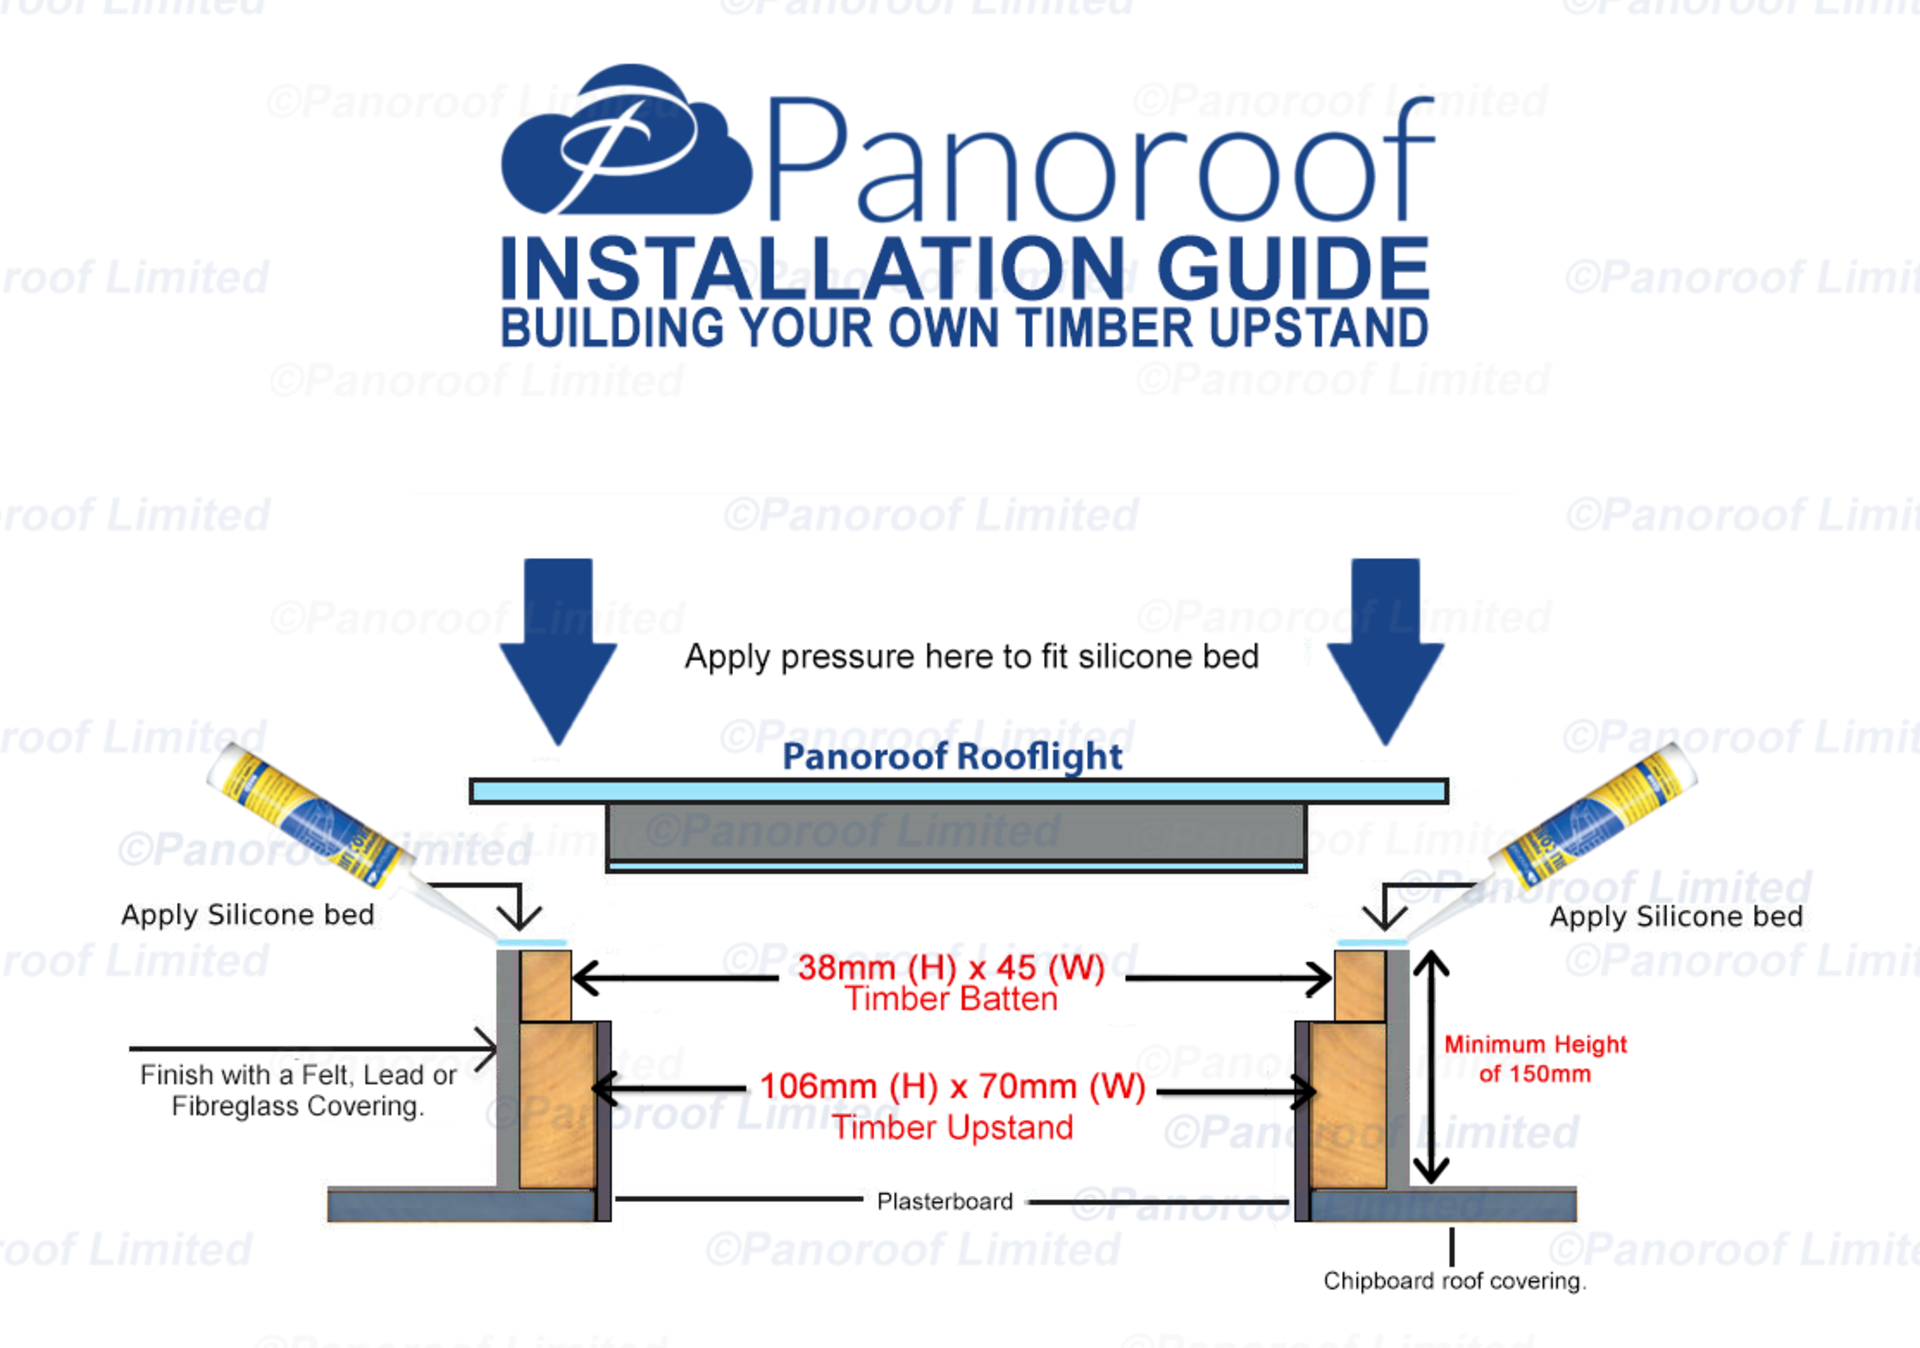 Panoroof 2000x3000mm (inside Size Visable glass area) Seamless Glass Skylight Flat Roof Rooflight - Image 3 of 6